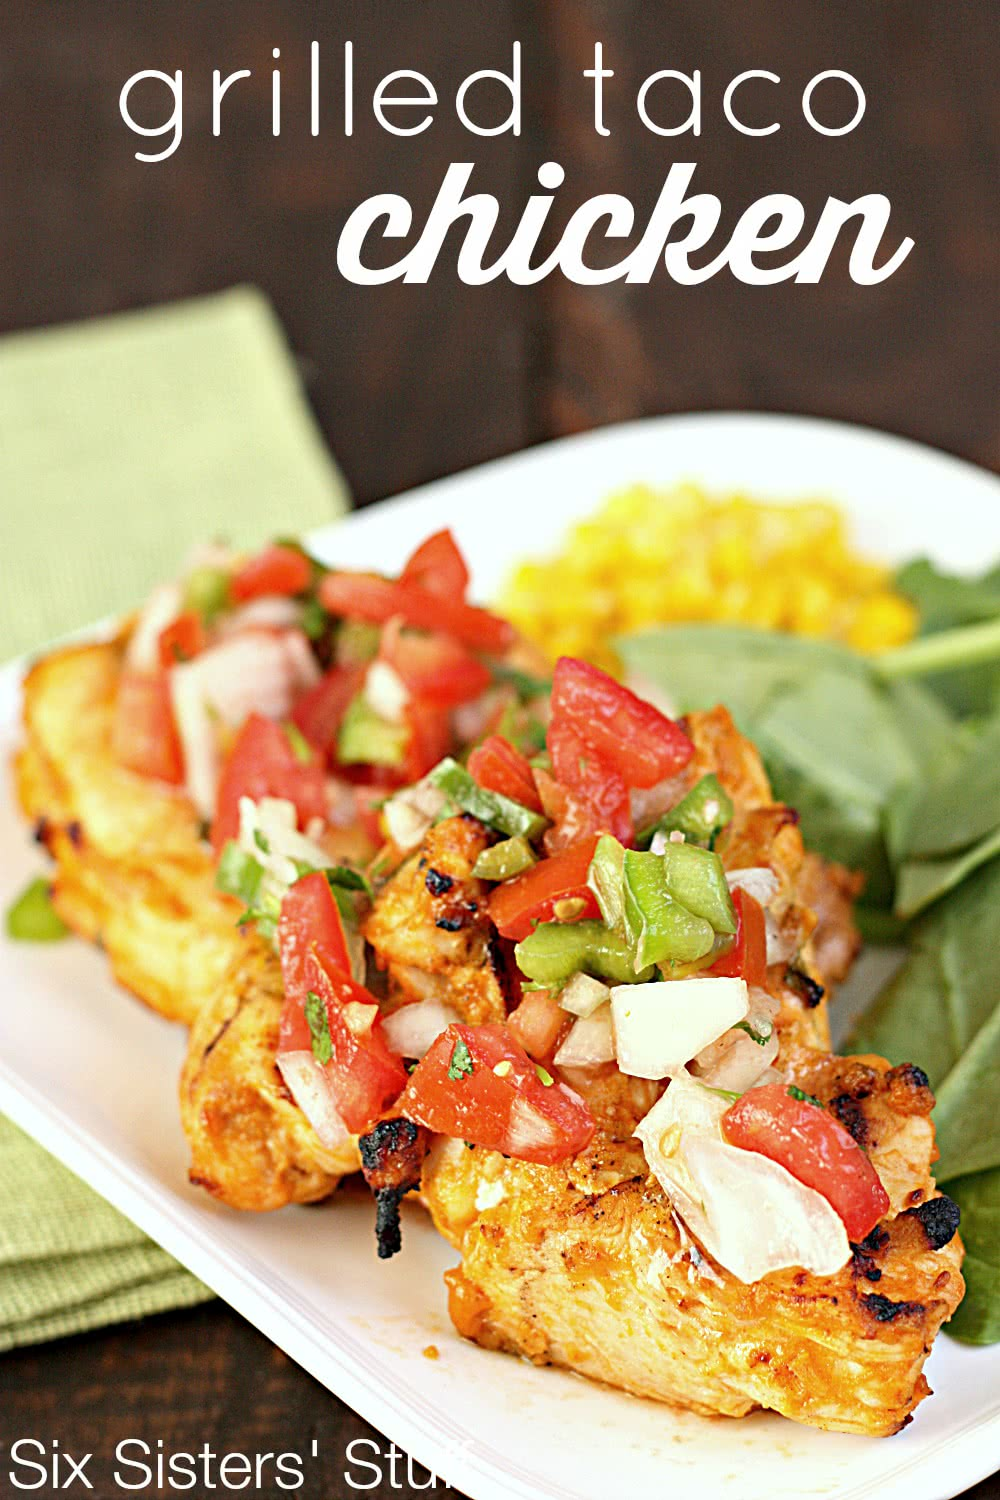 Grilled Taco Chicken Recipe